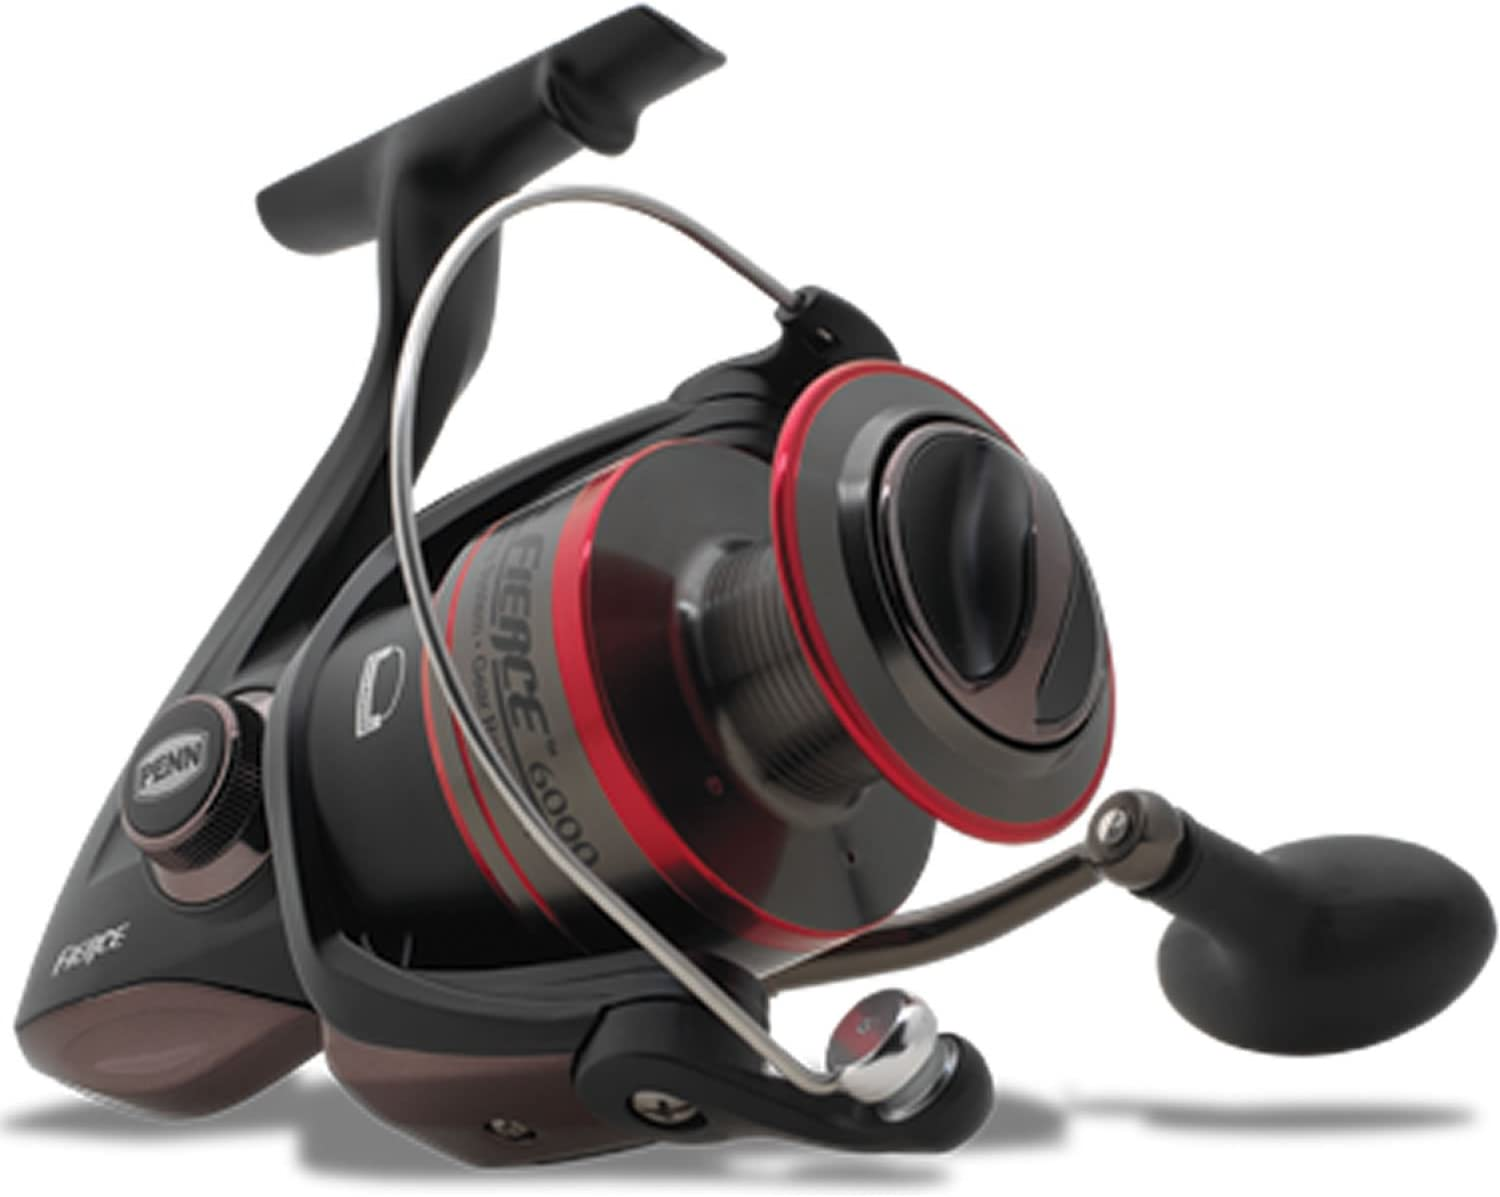 Penn Fierce 4 1 Bearing 5.6 1 15 220 Line Capacity Spinning Reel